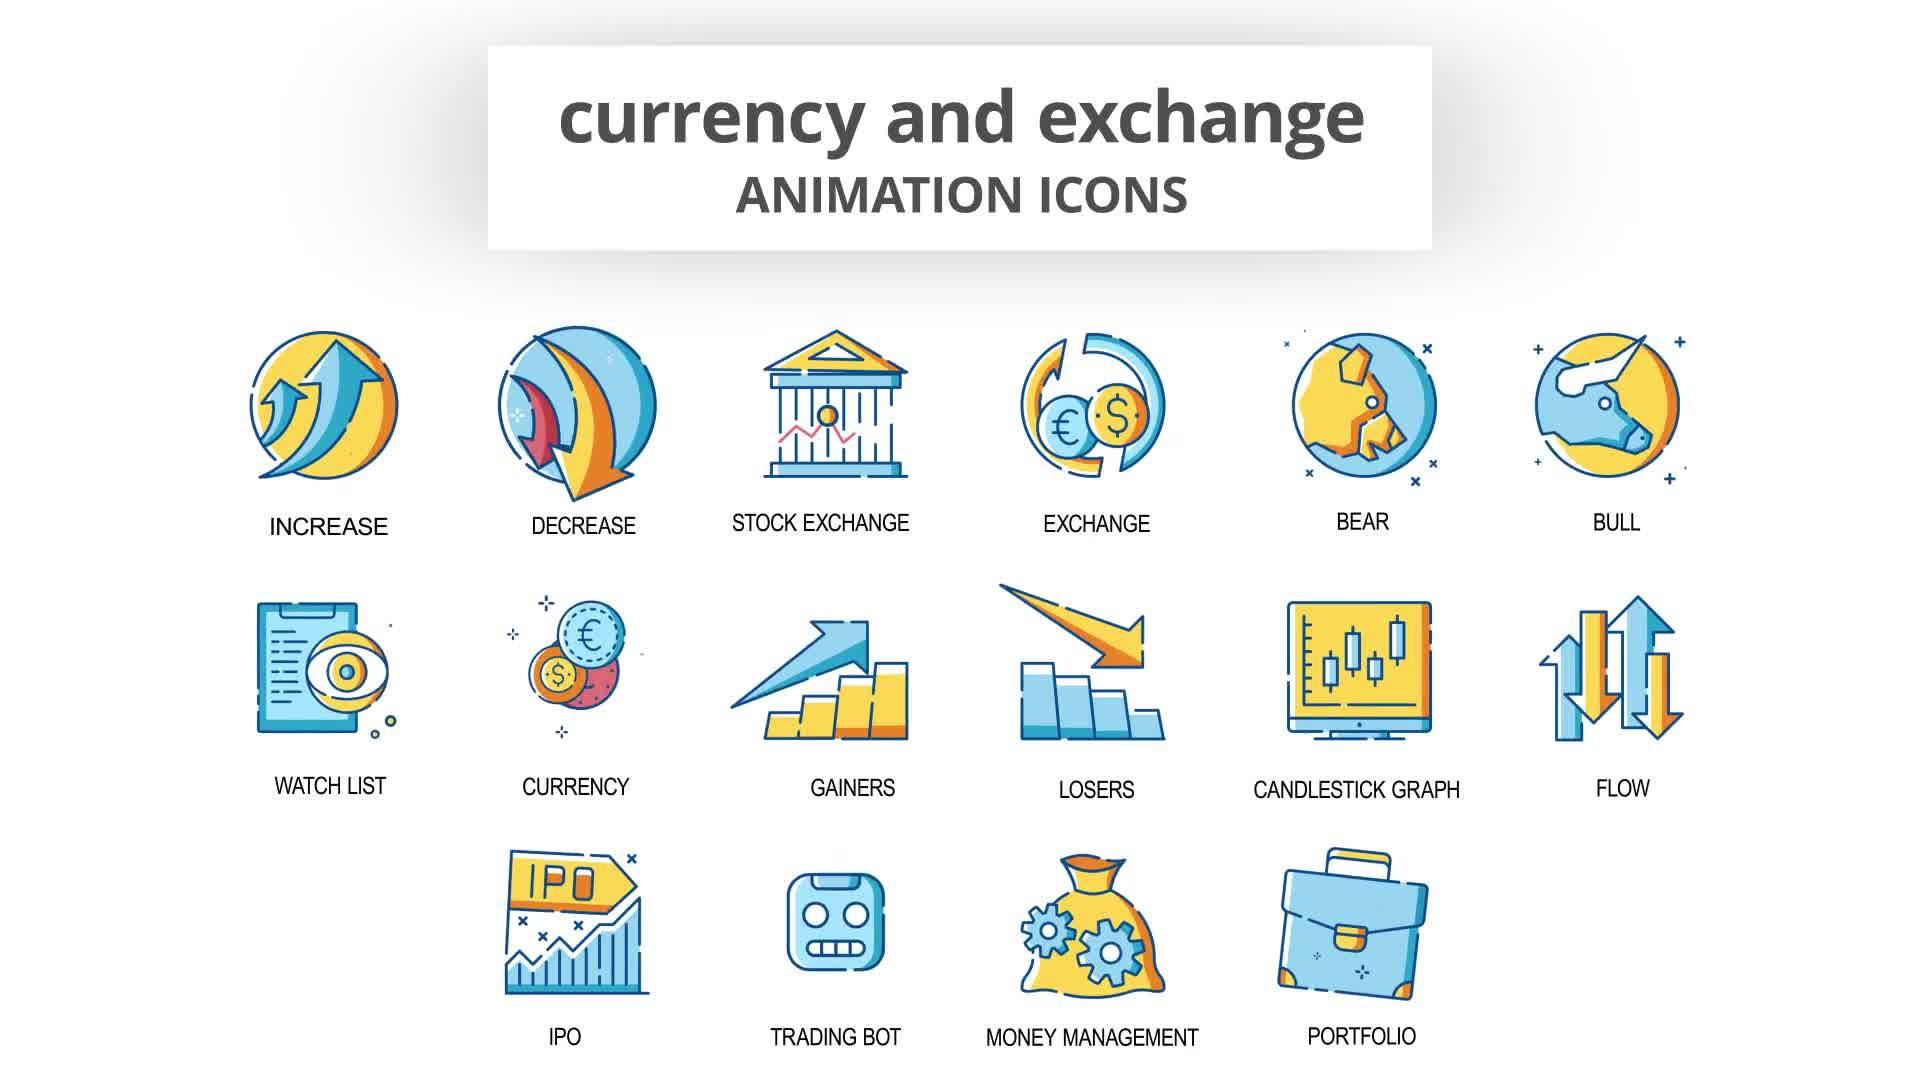 Currency & Exchange Animation Icons Videohive 30260825 After Effects Image 9